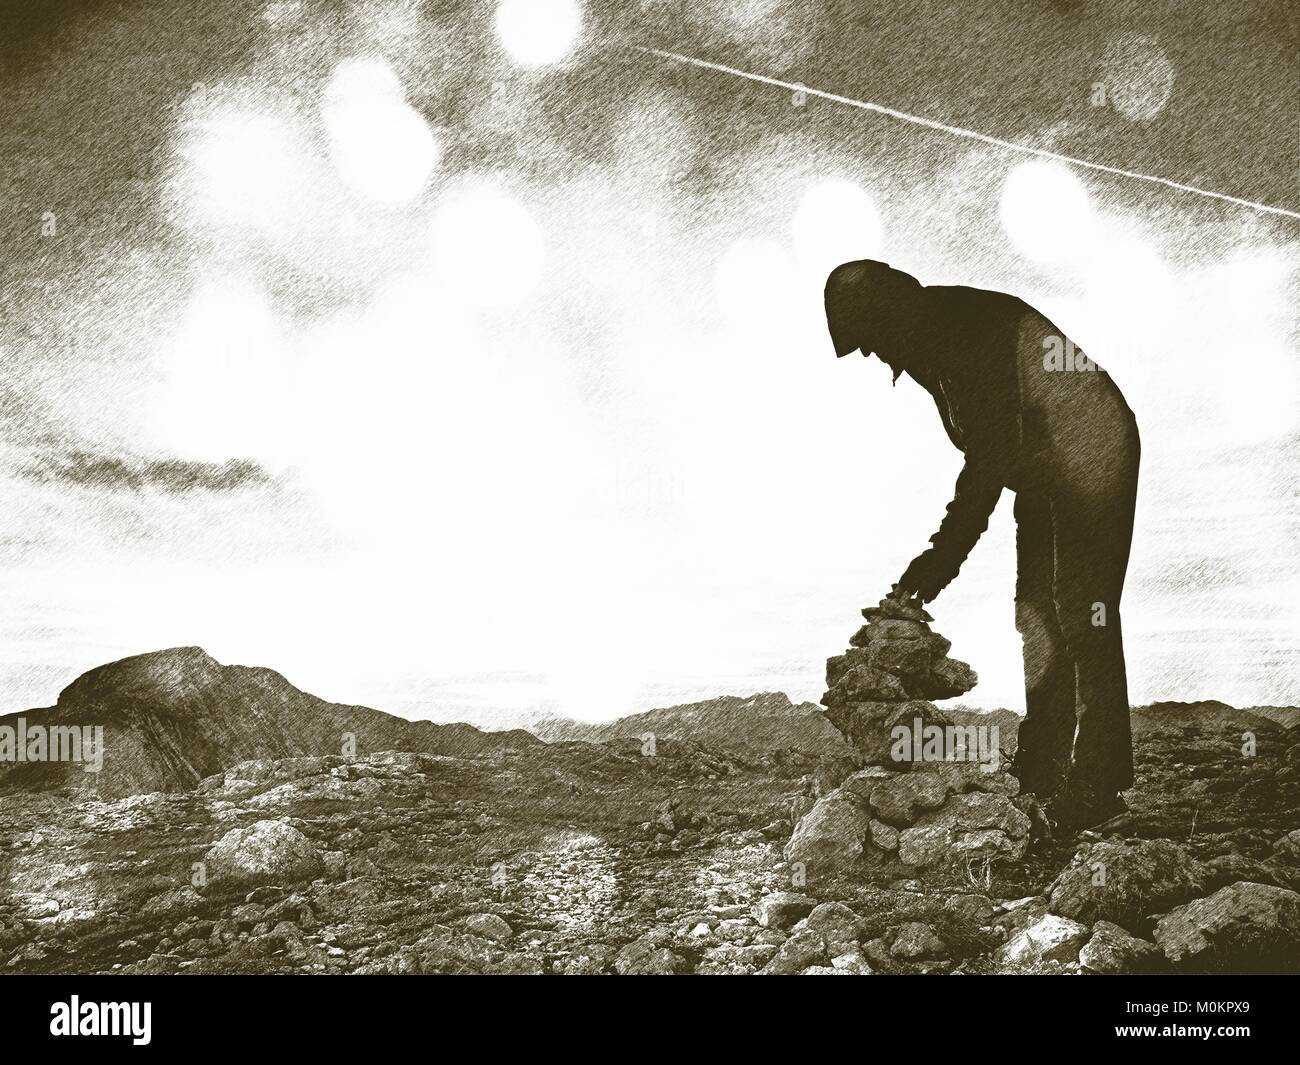 Copy of old lithographic technique. A  man is stocking stone to pyramid. Alps mountain summit, evening sun - Stock Image